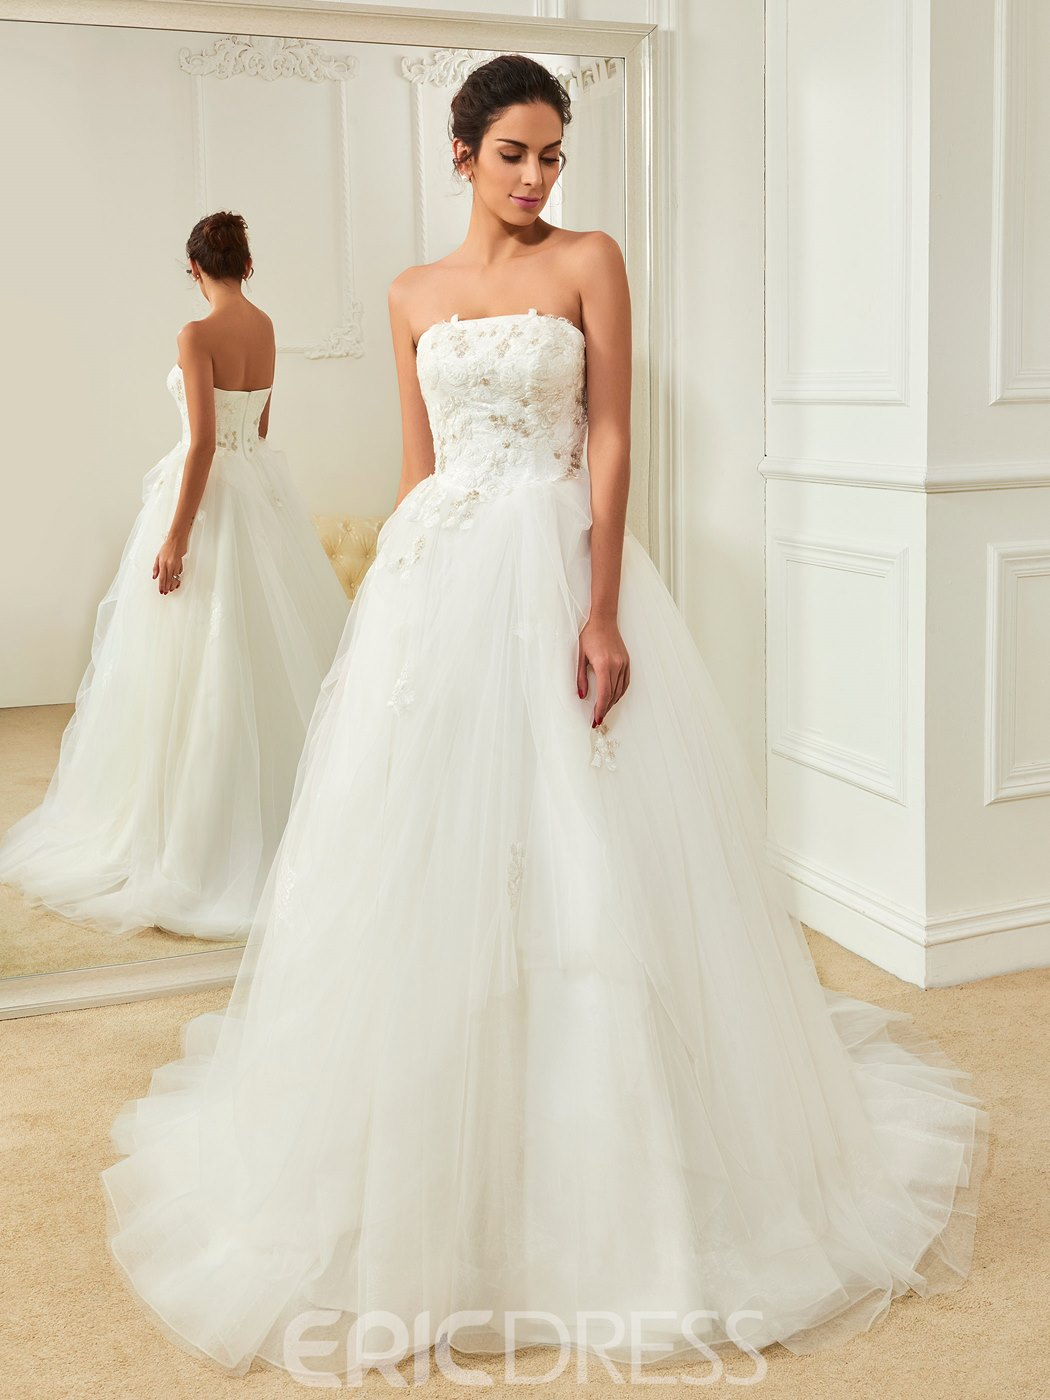 Ericdress High Quality Appliques Strapless A Line Wedding Dress